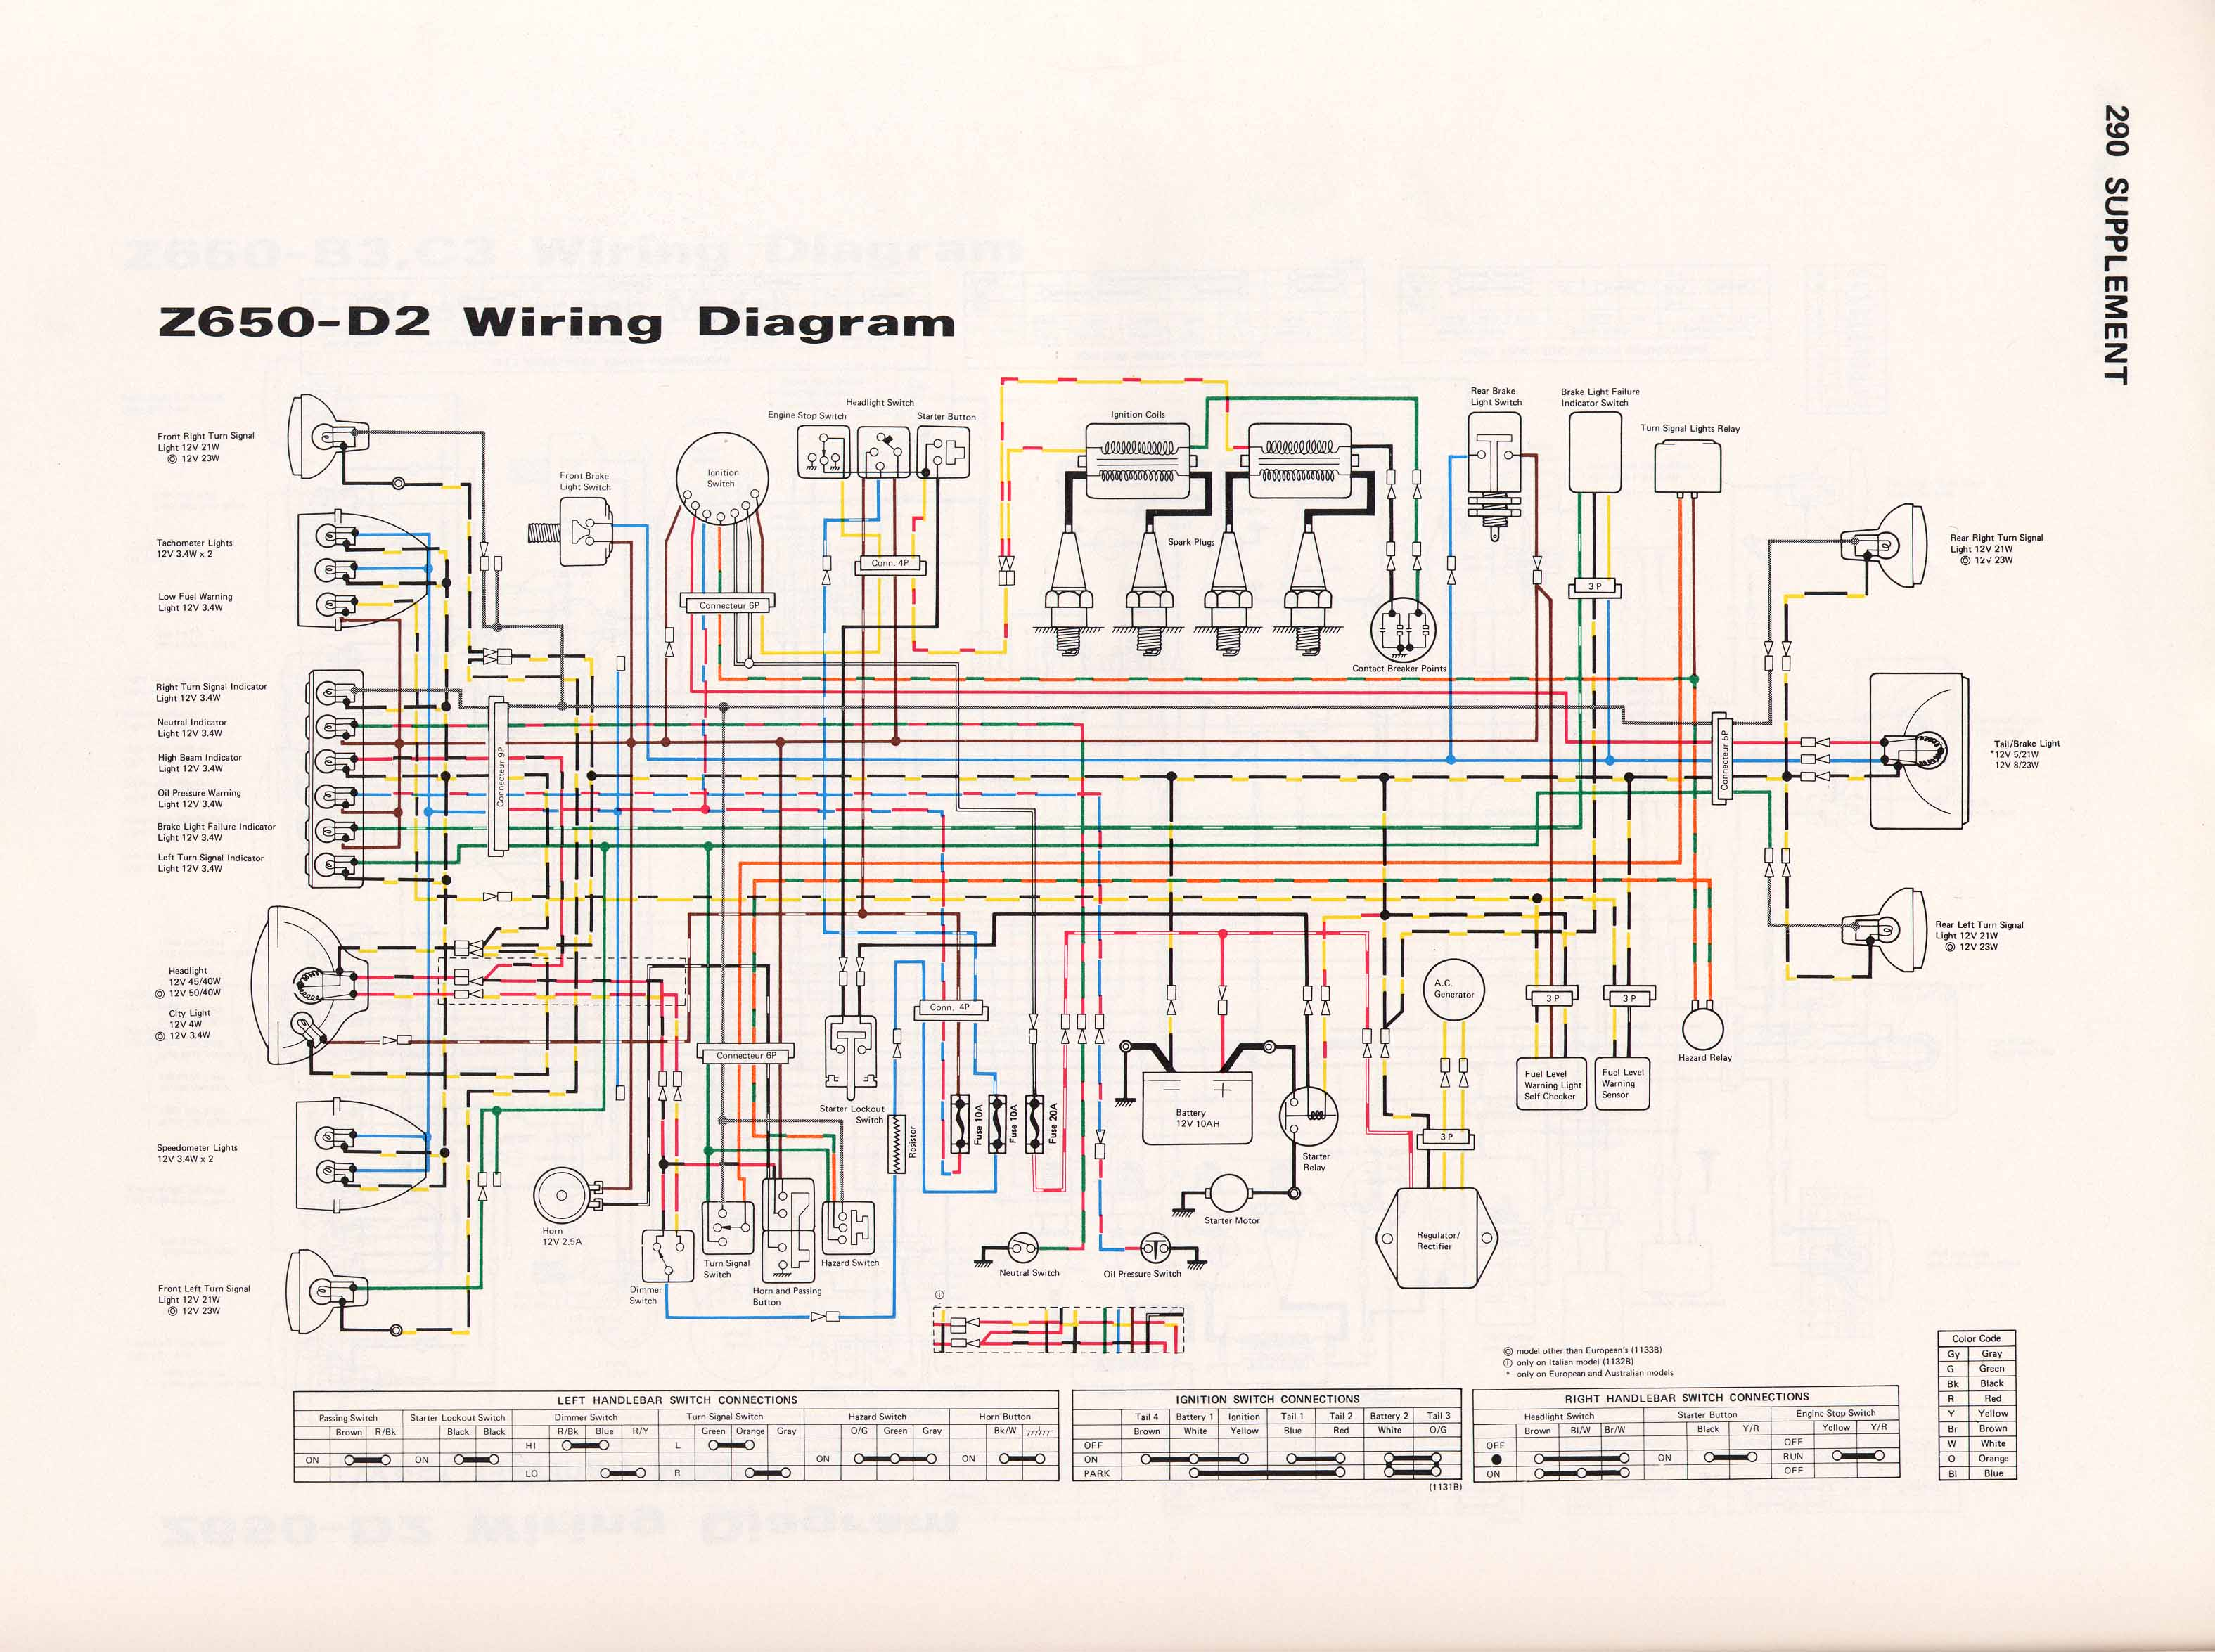 kawasaki z650 wiring harness wiring diagram electricity basics 101 u2022 rh agarwalexports co Ford Wiring Harness Kits Wiring Harness Terminals and Connectors